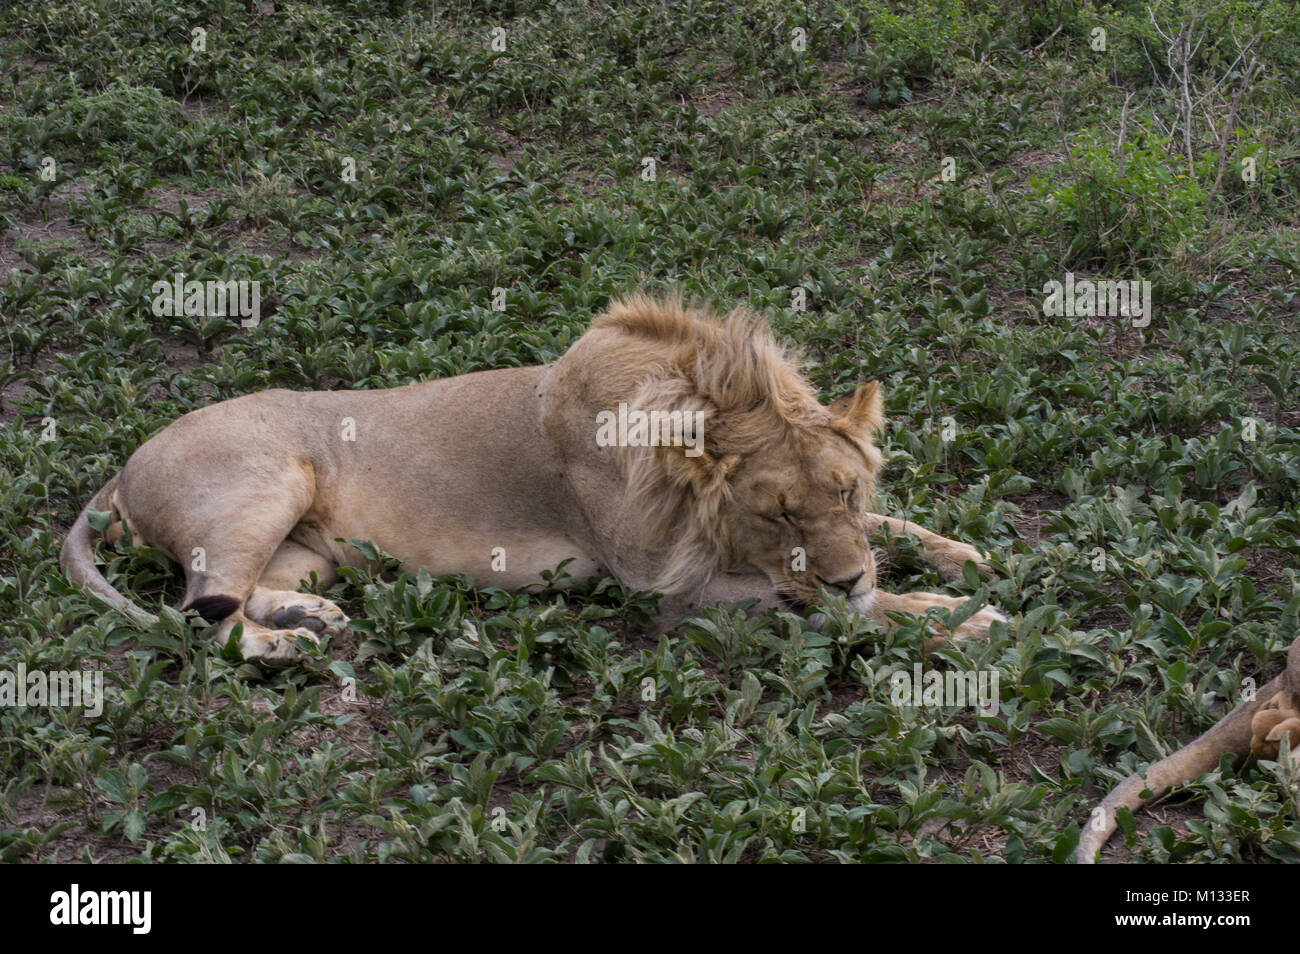 Male lion, King of the jungle, sleeping peacefully in the Serengetti in Tanzania on a lush green bed with furry - Stock Image